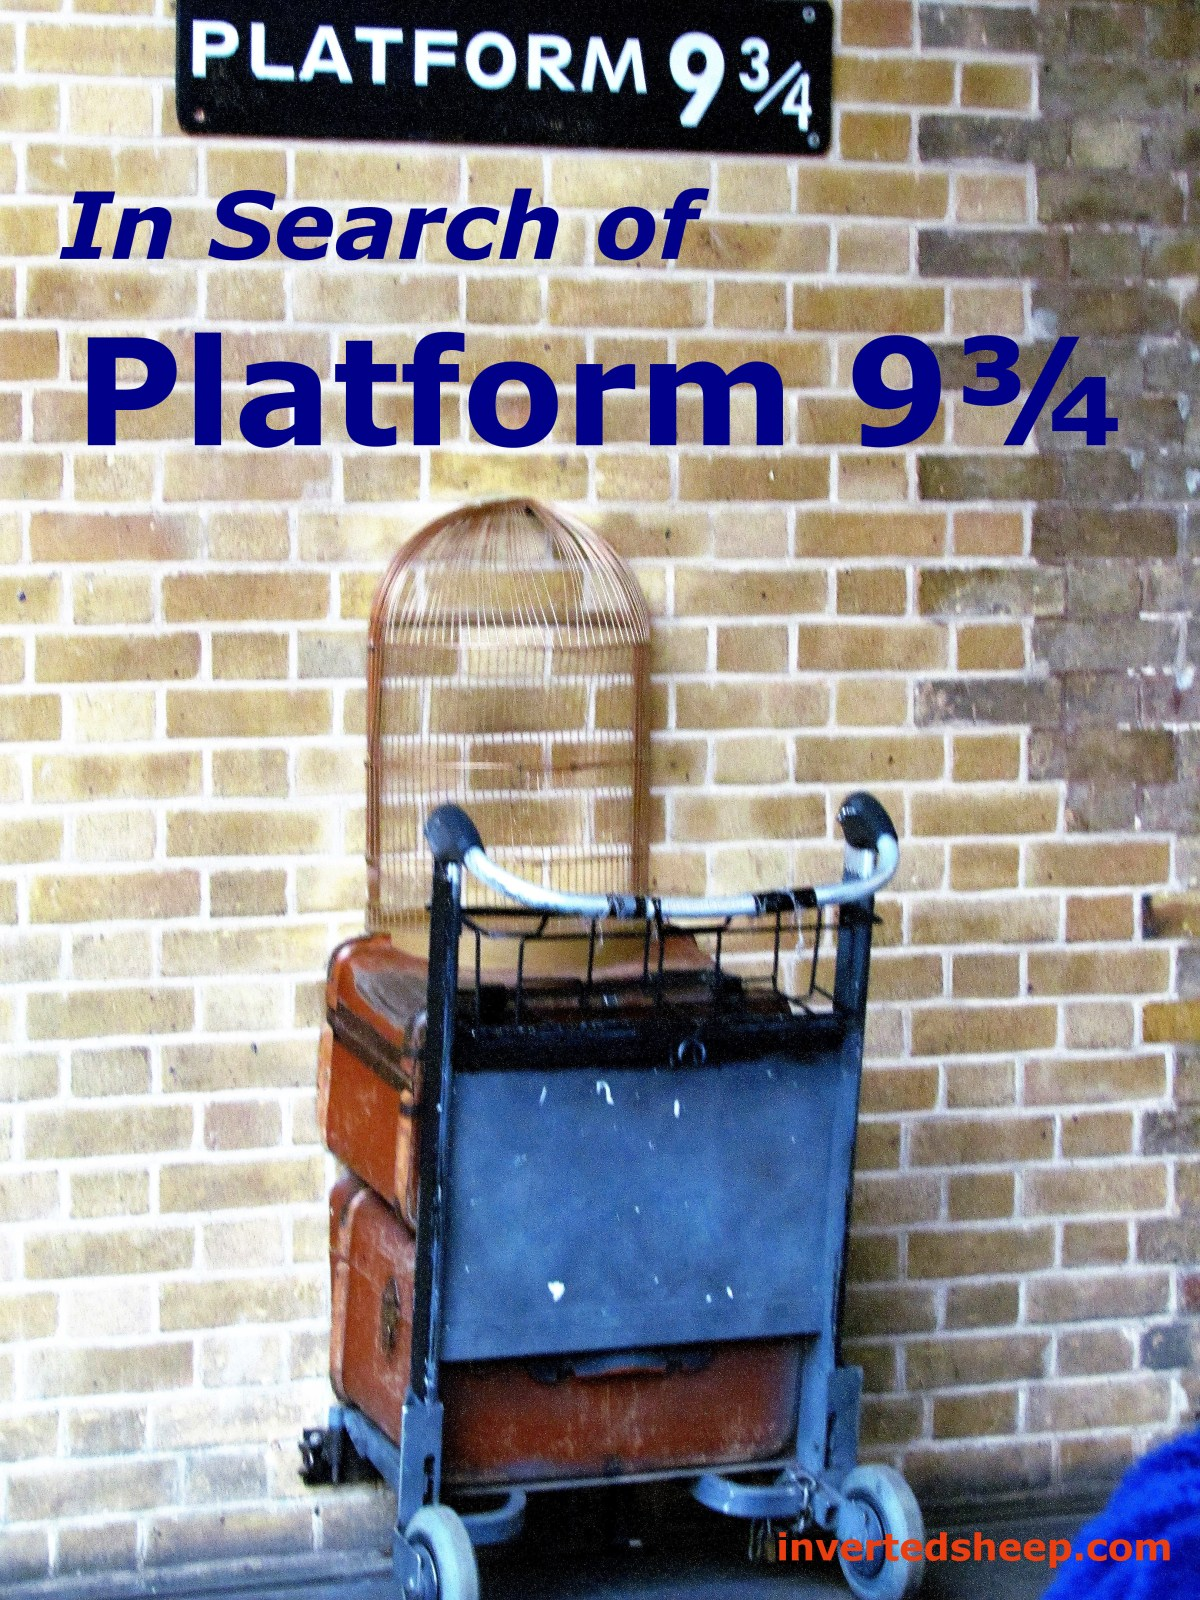 In Search of Platform 9¾